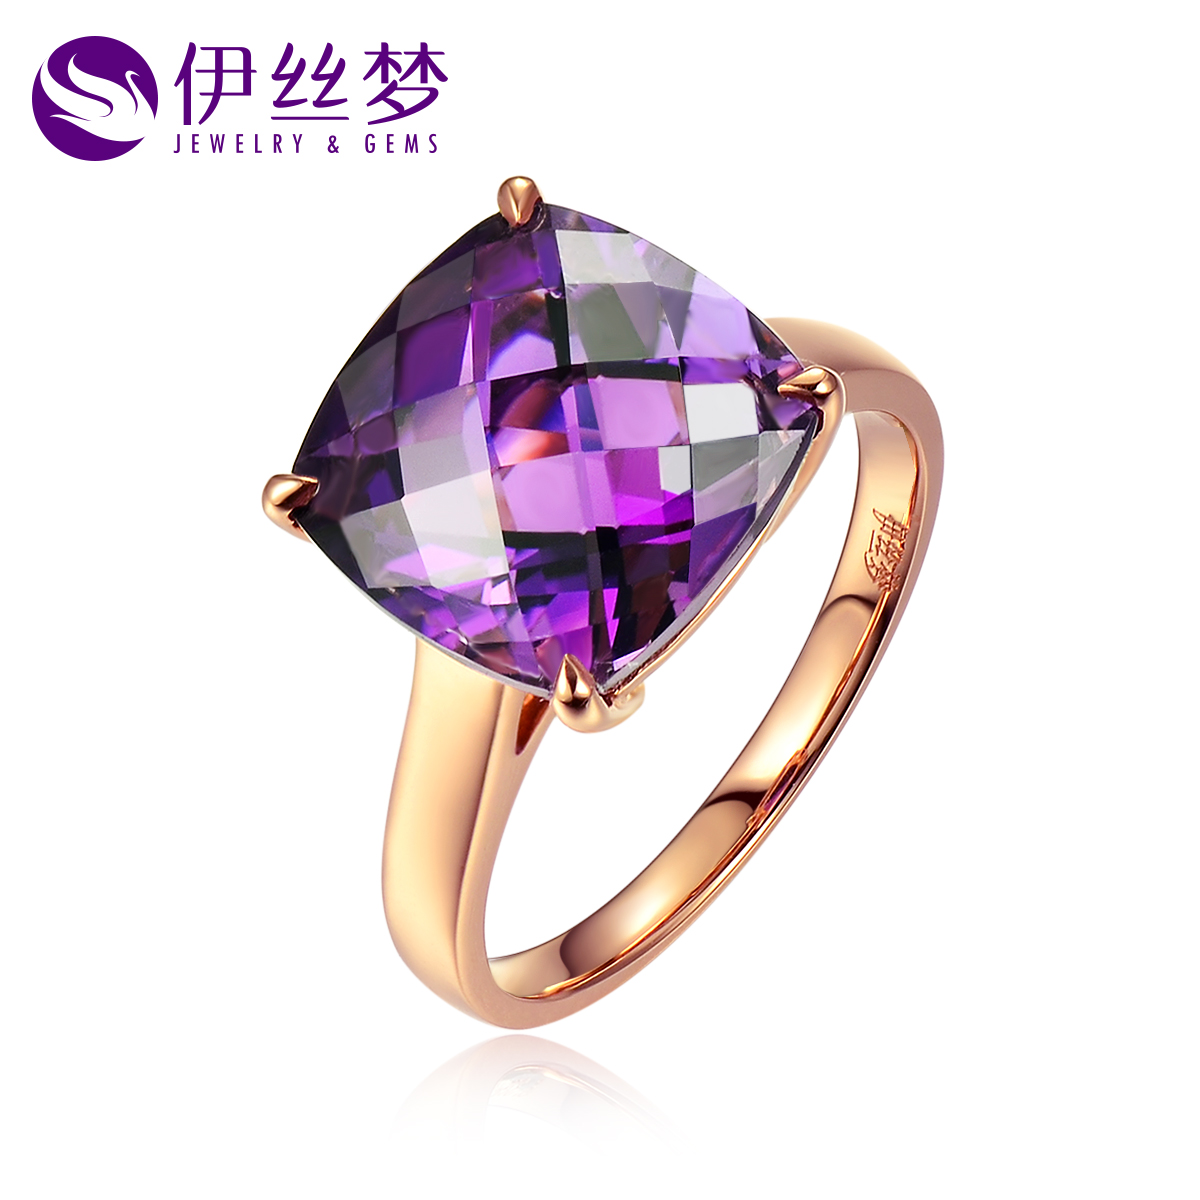 Lois dreams jewelry 8.2 karat k gold brazilian amethyst natural amethyst ring nvjie multicolored squares